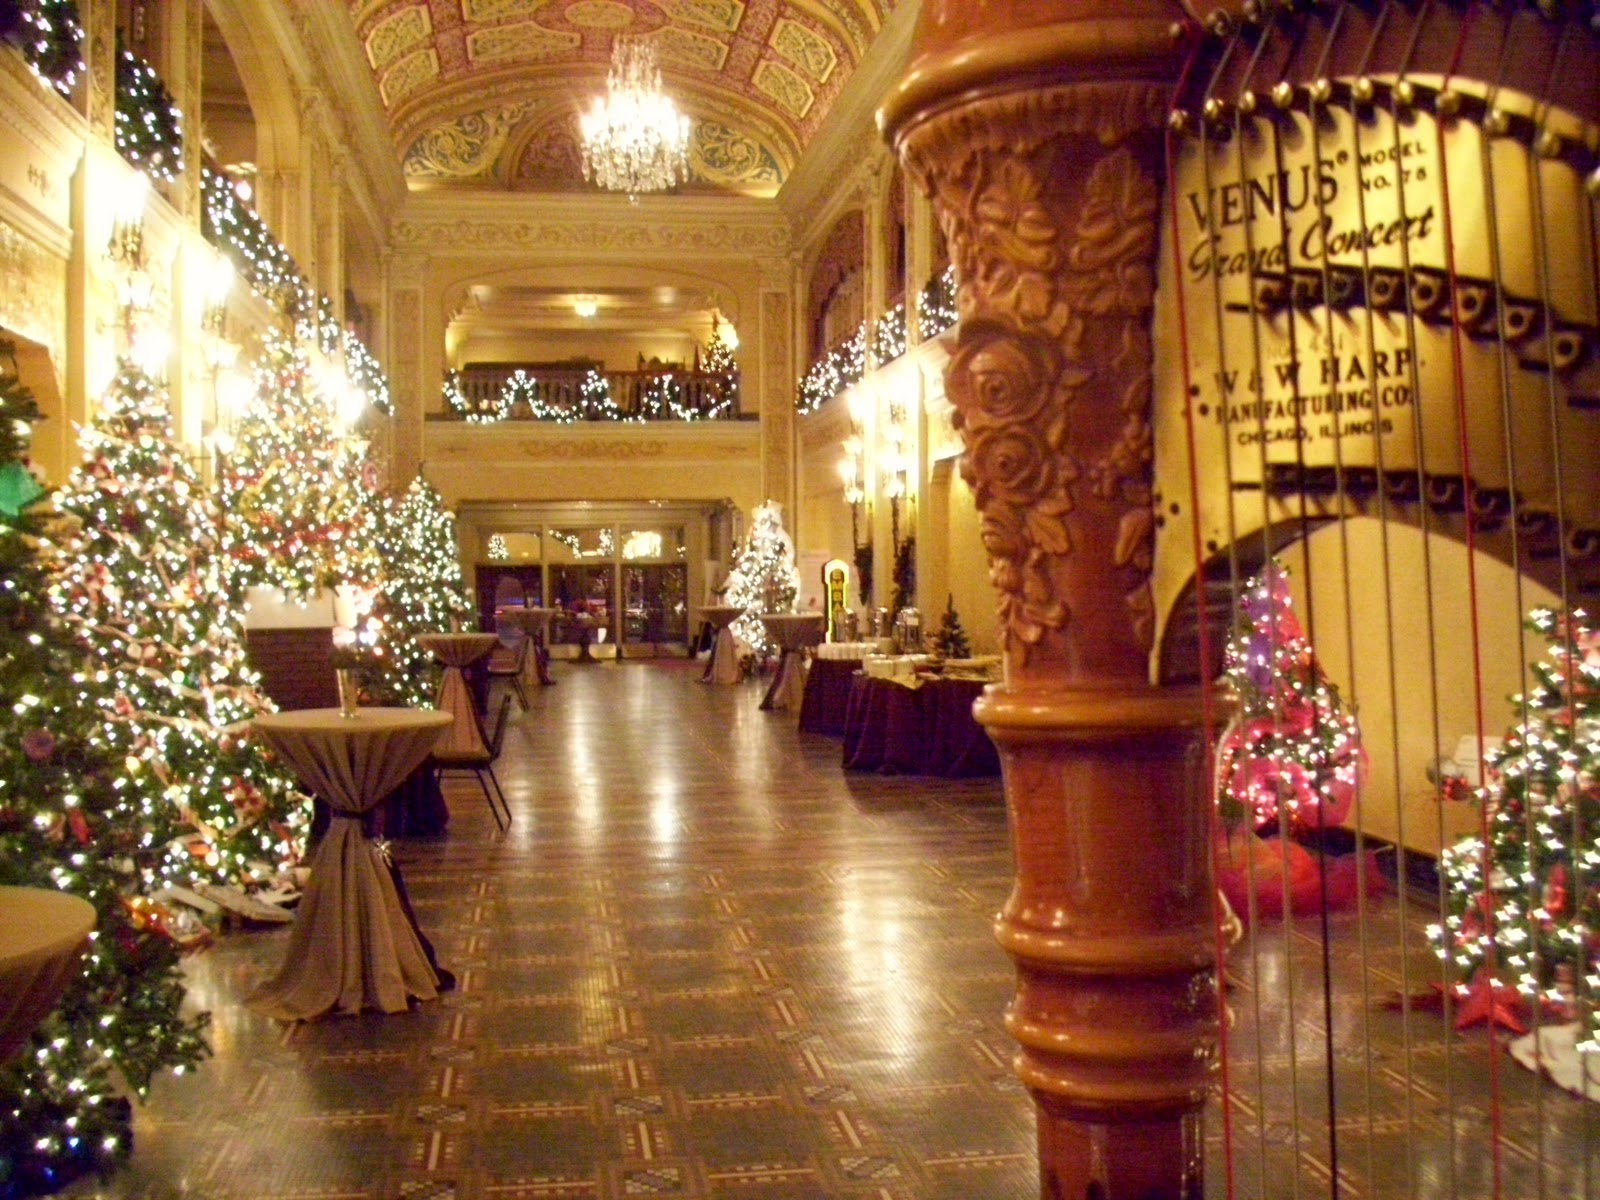 Fort Wayne Harpist Embassy Theatre Christmas Party The Classic